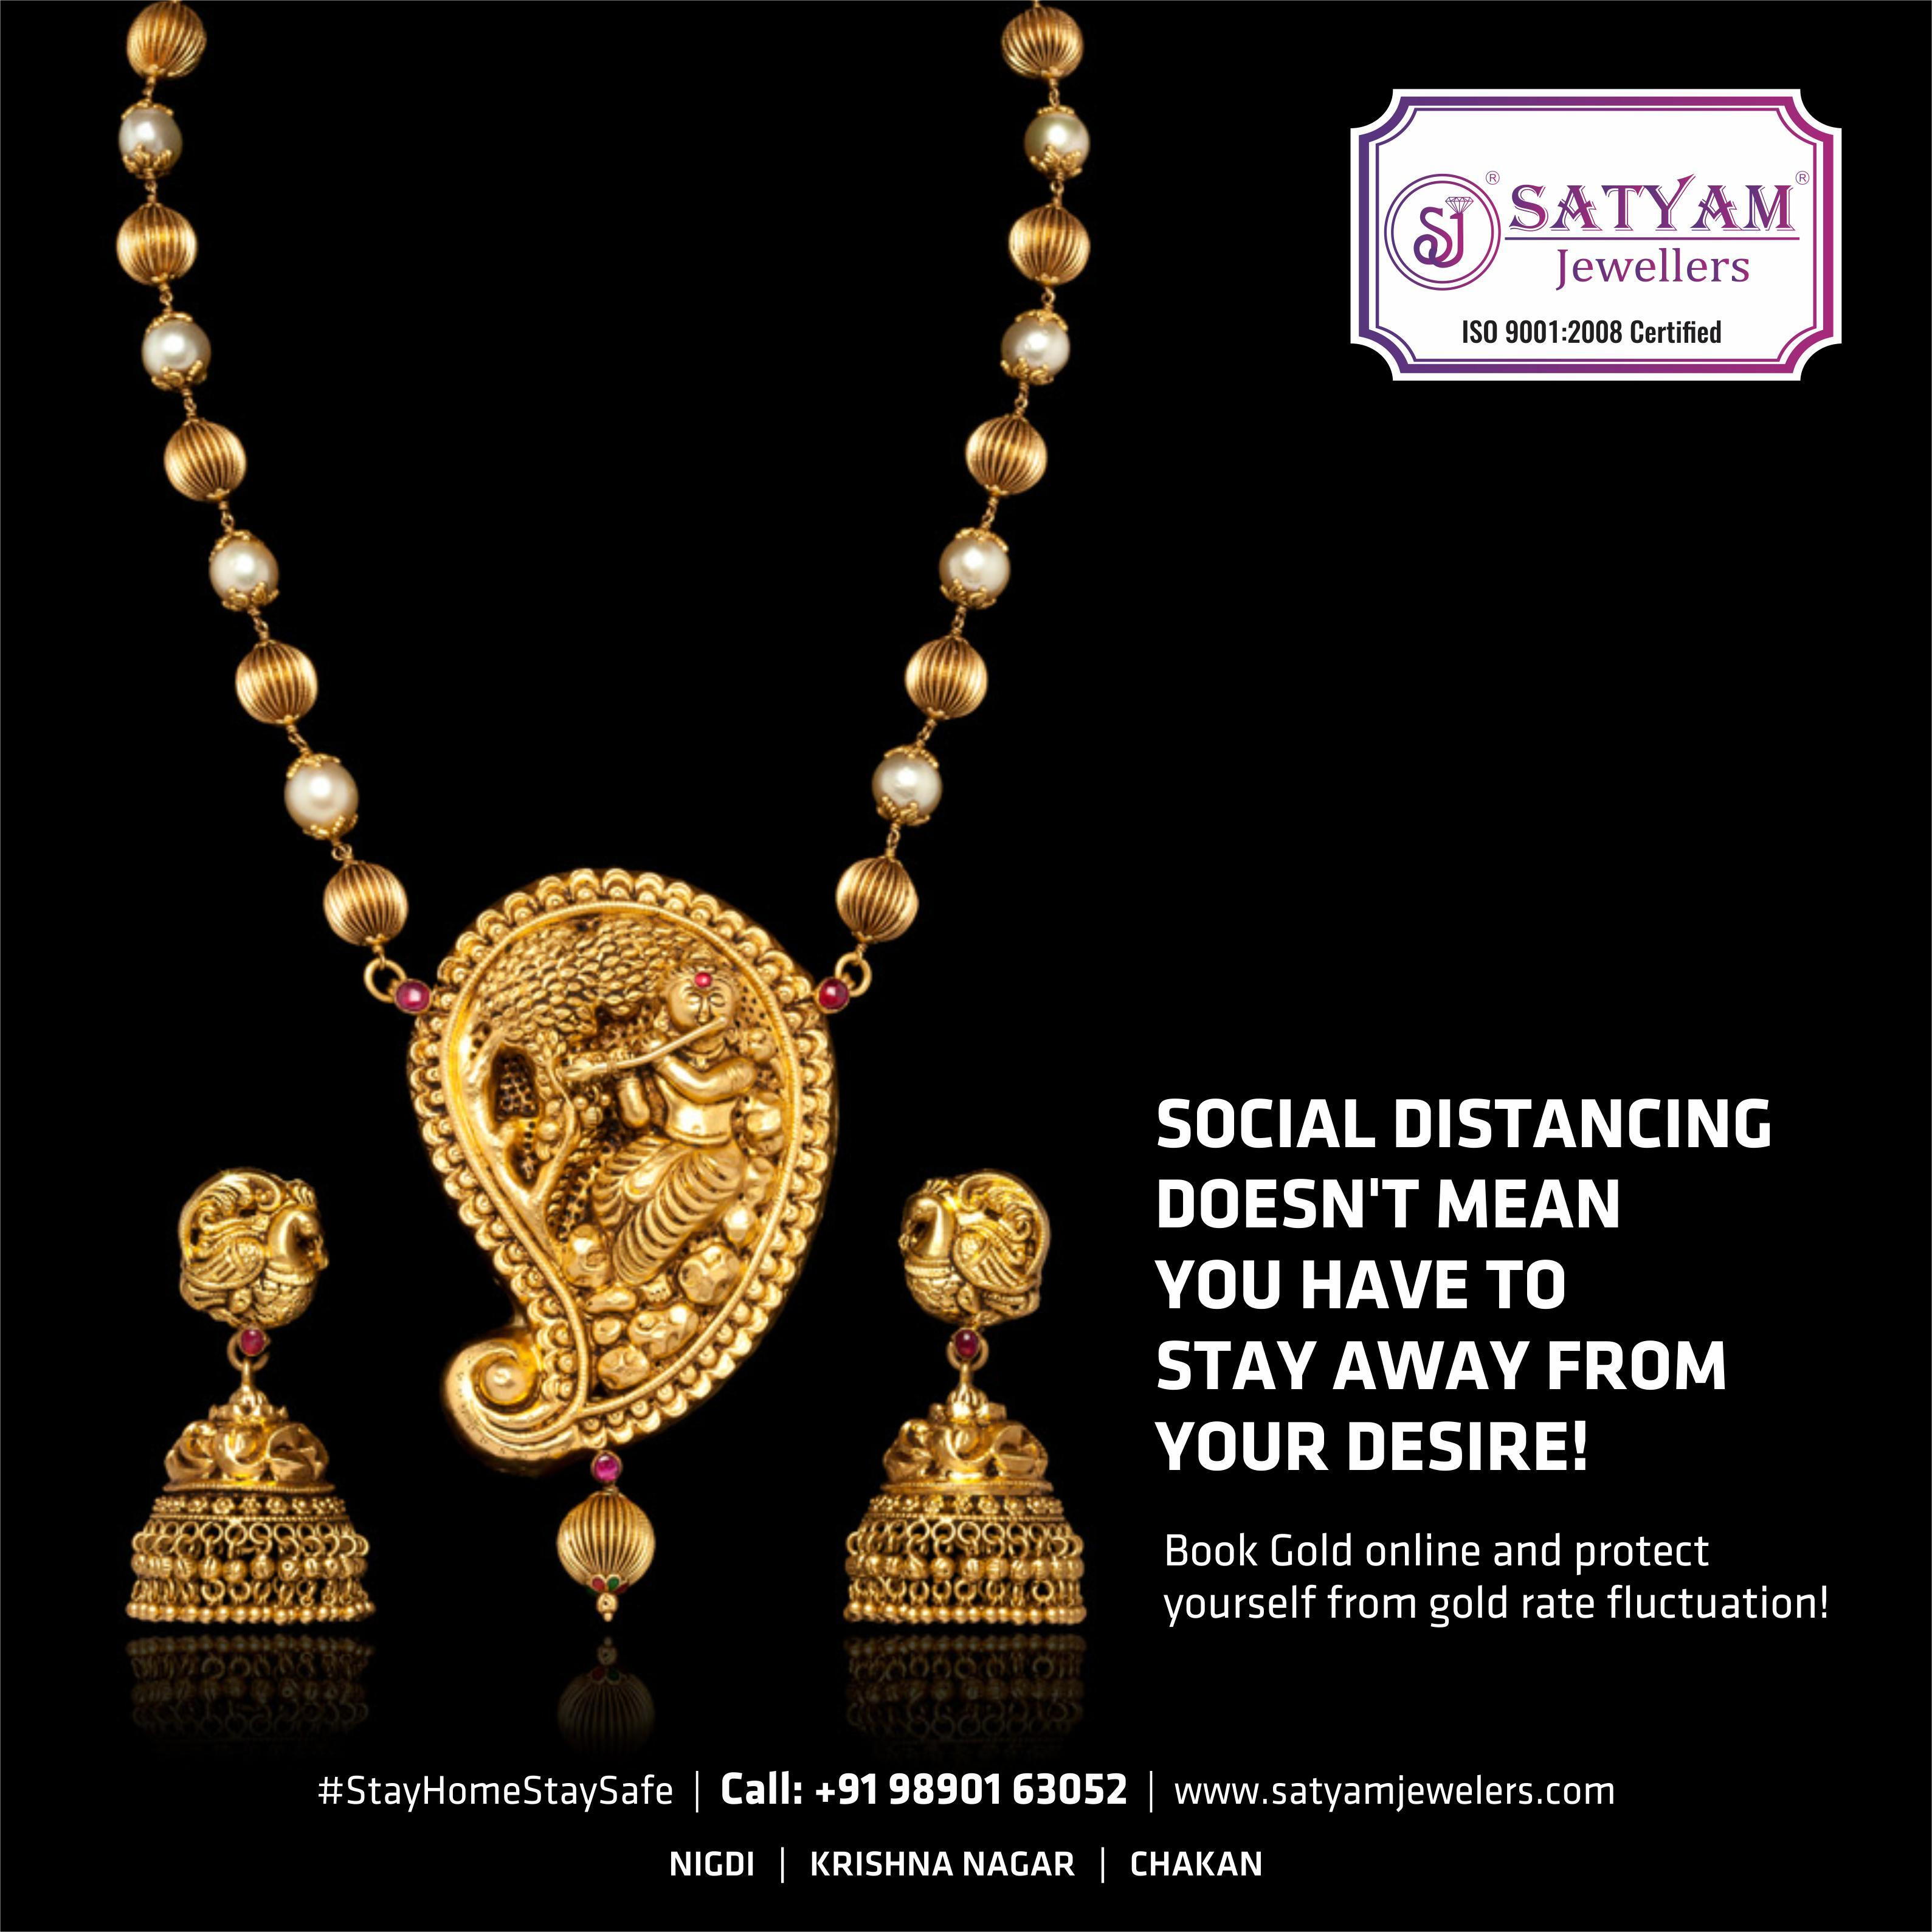 gold-jewelers-in-pune 3.jpg